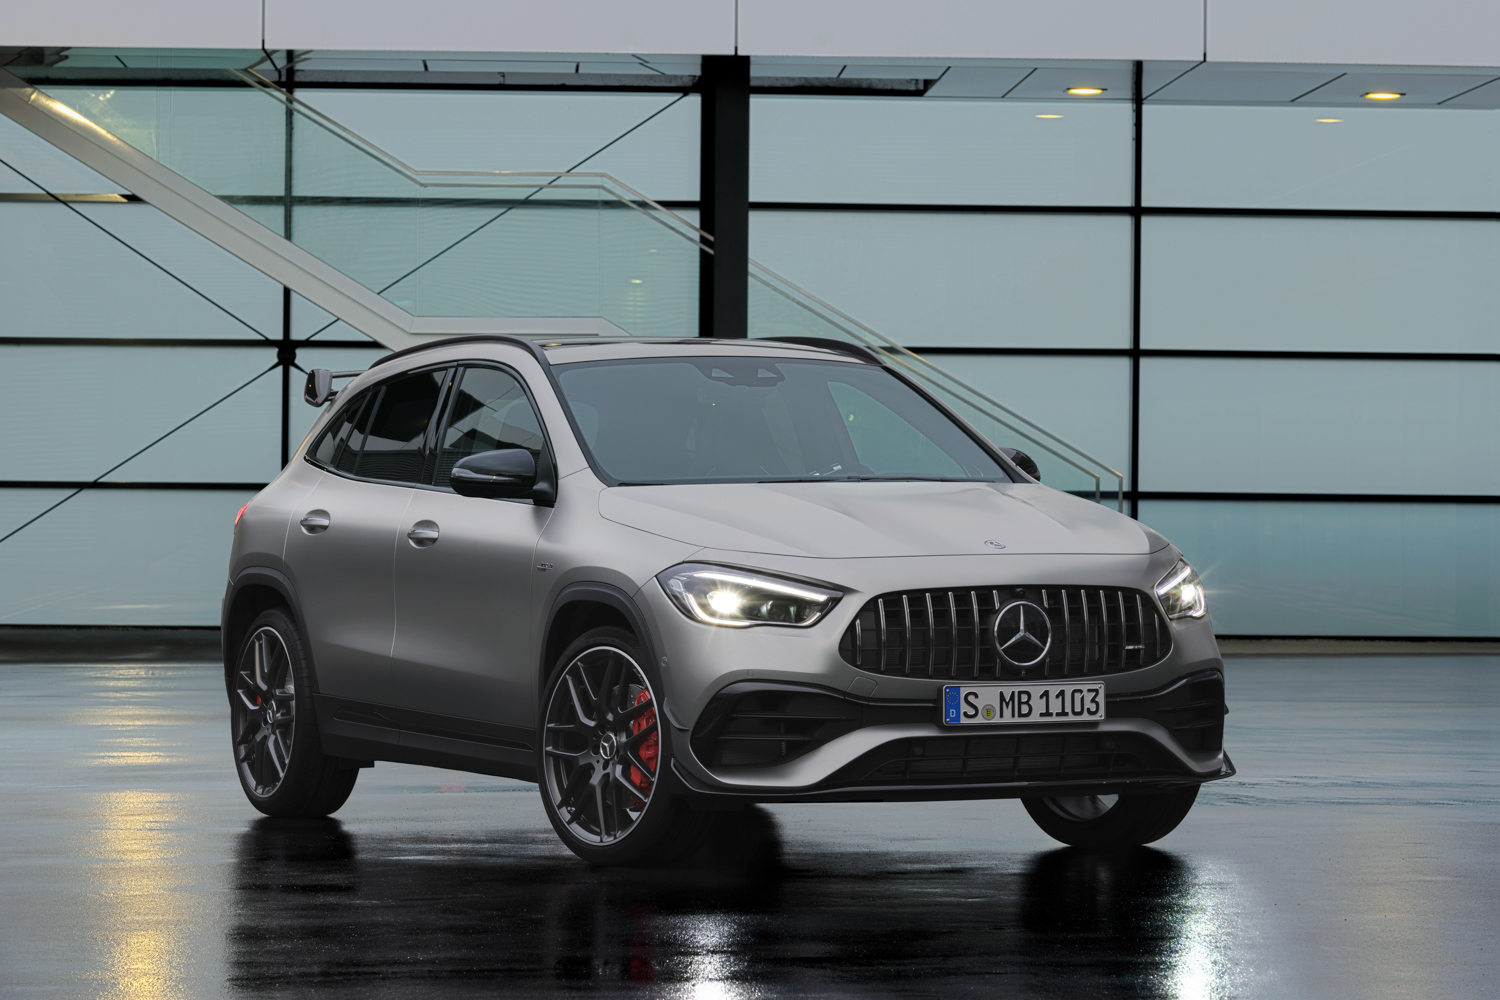 Mercedes shows off GLA 45 AMG